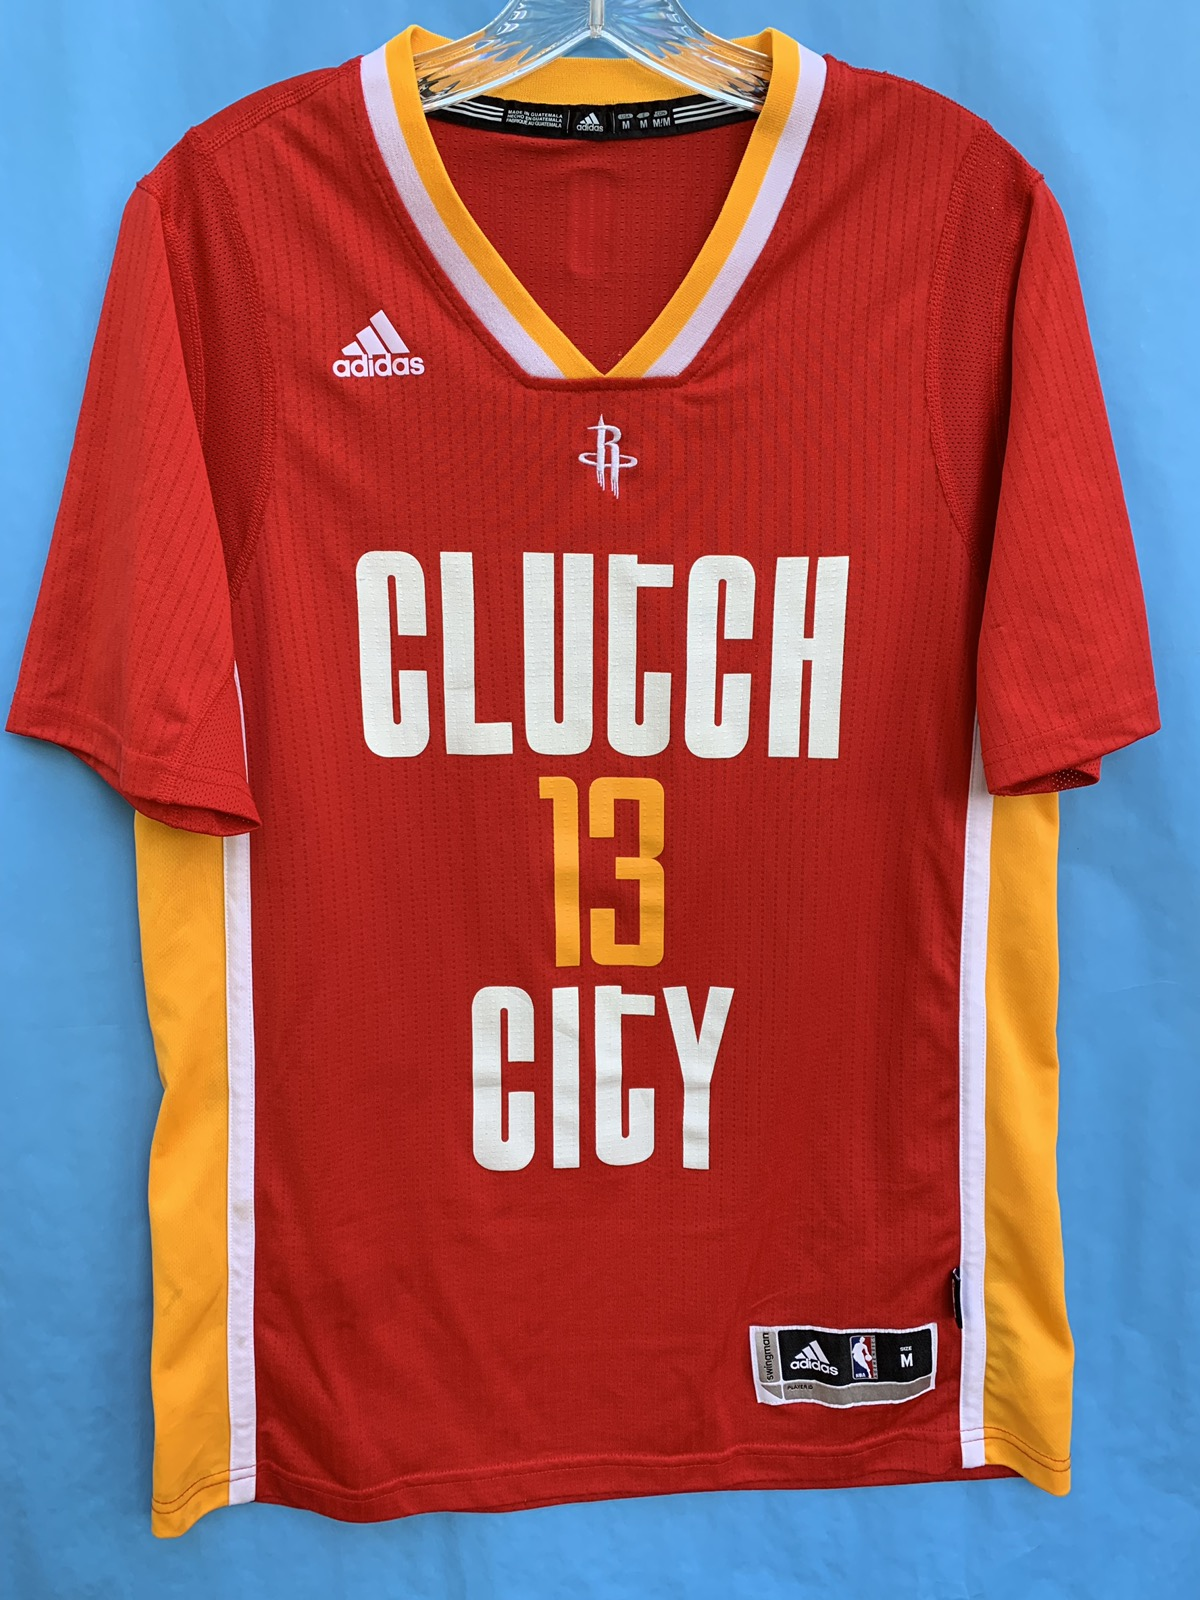 100% authentic a1e38 c99f2 2015 Adidas James Harden Houston Rockets Clutch City Jersey